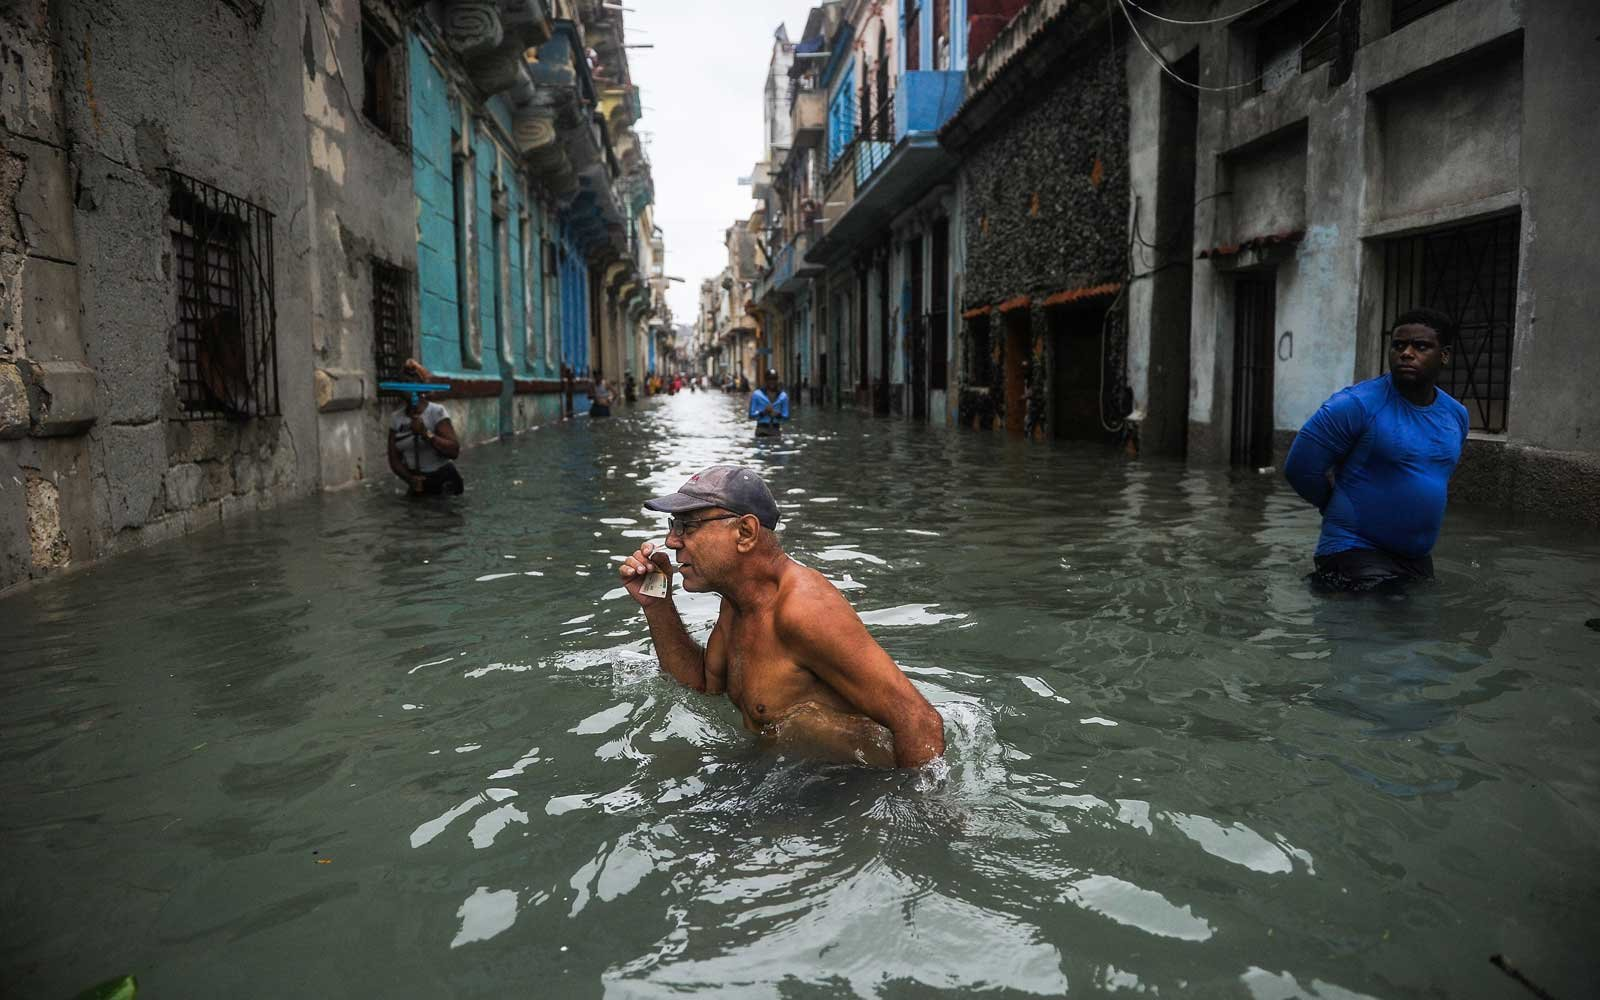 A Cuban wades through a flooded street in Havana, on September 10, 2017